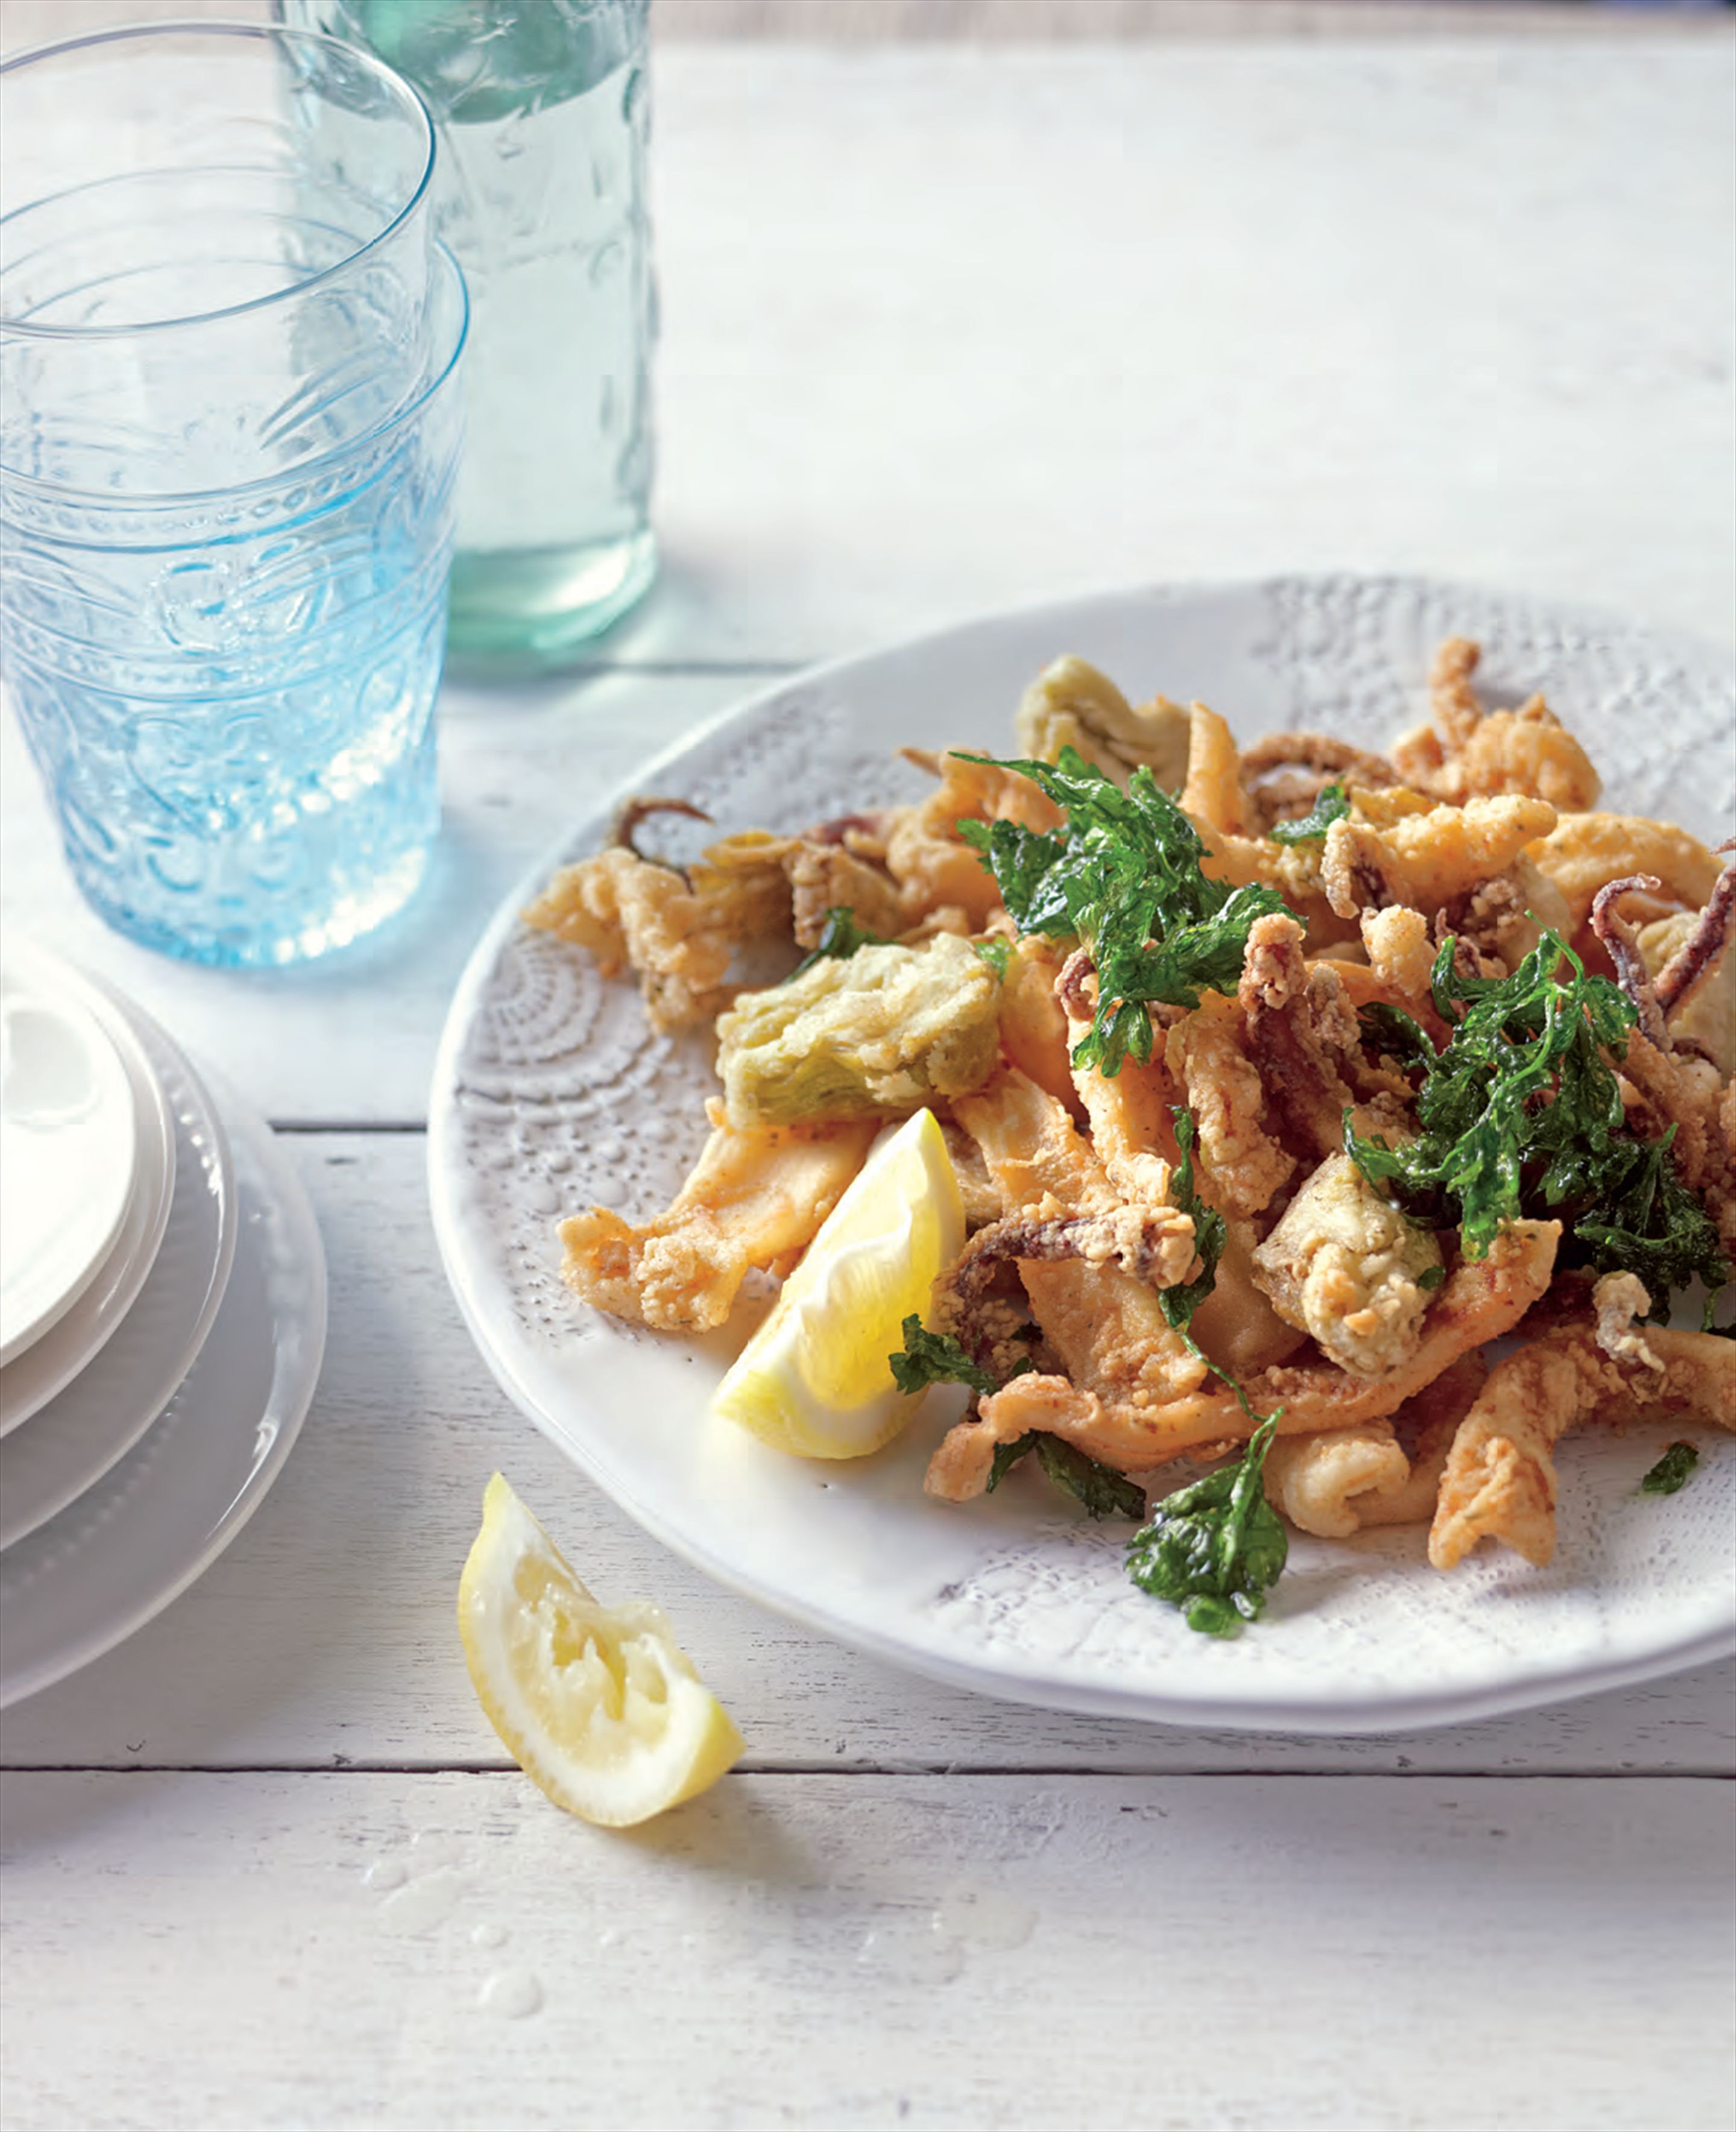 Fried calamari and artichokes